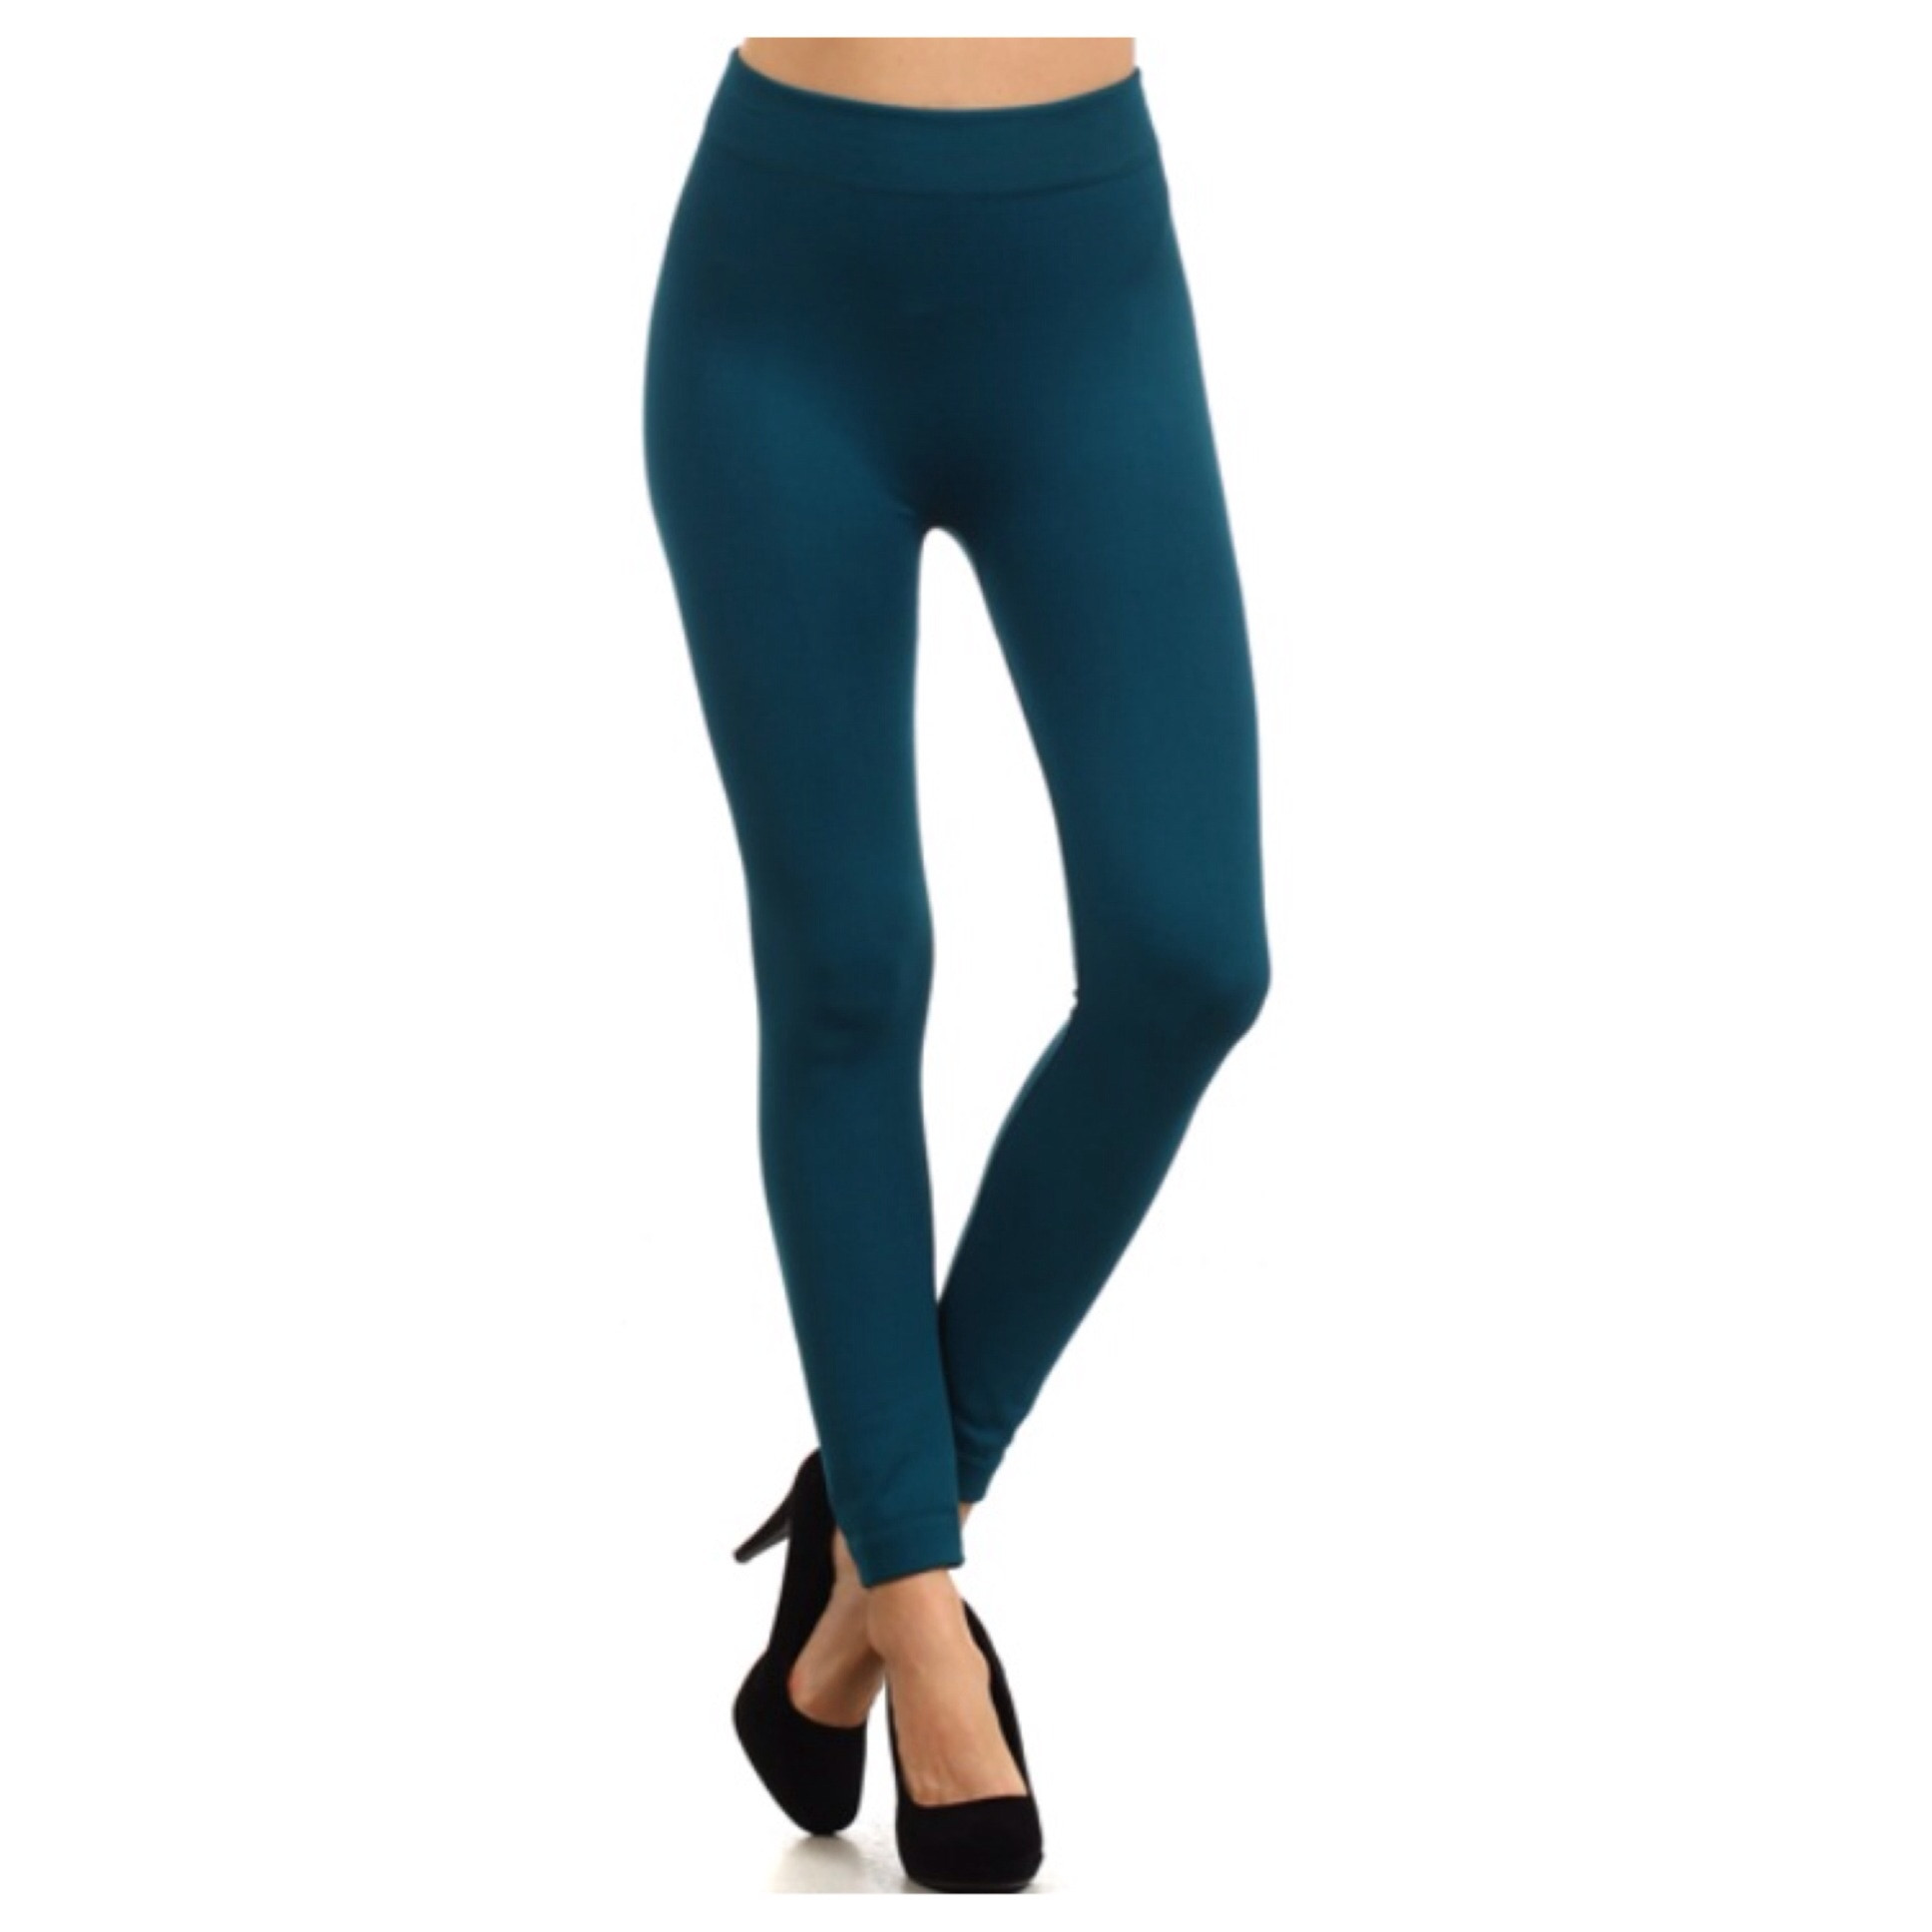 In Style Fleece Lined Solid Teal Leggings